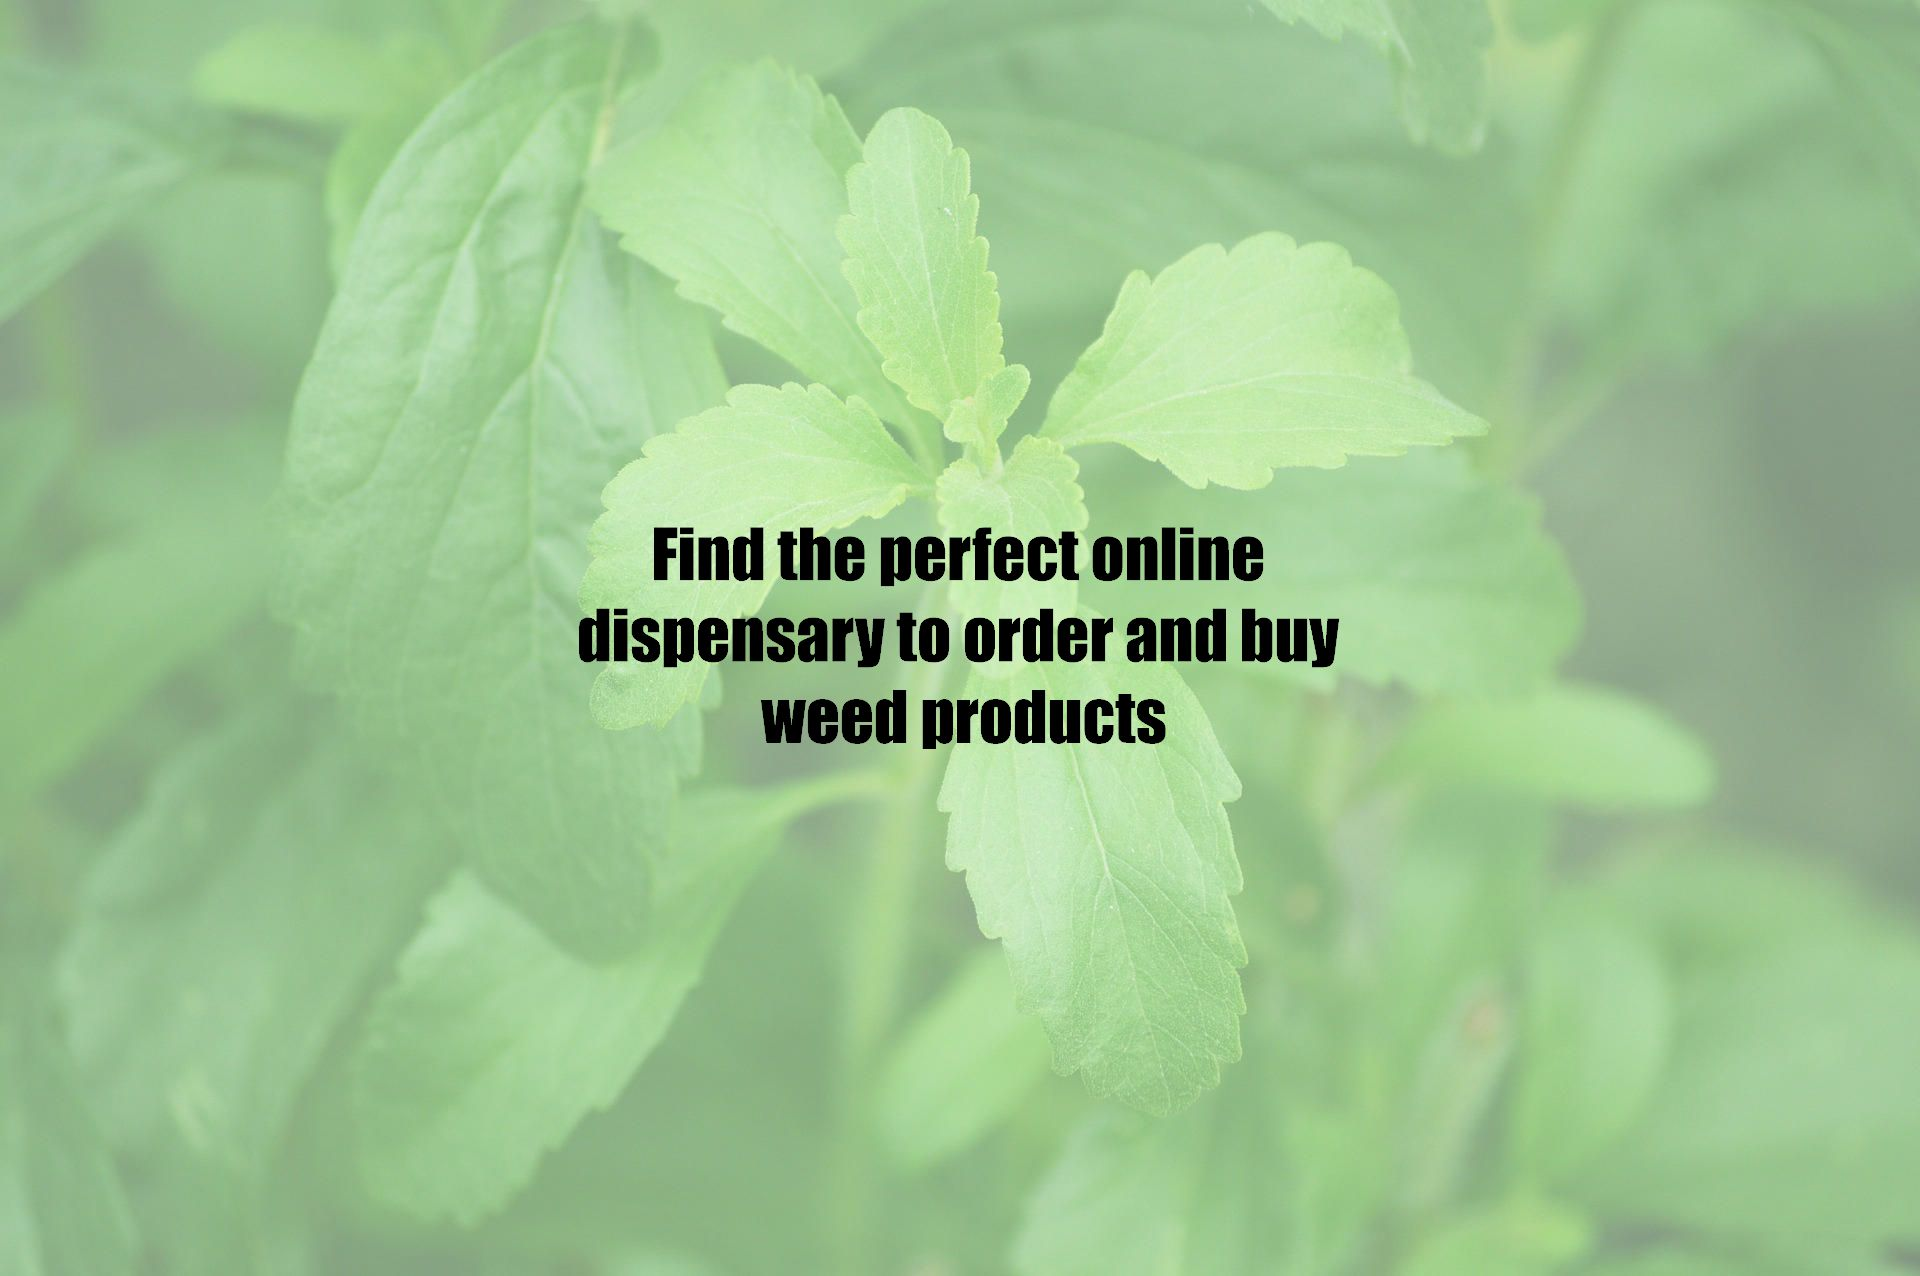 Find the perfect online dispensary to order and buy weed products